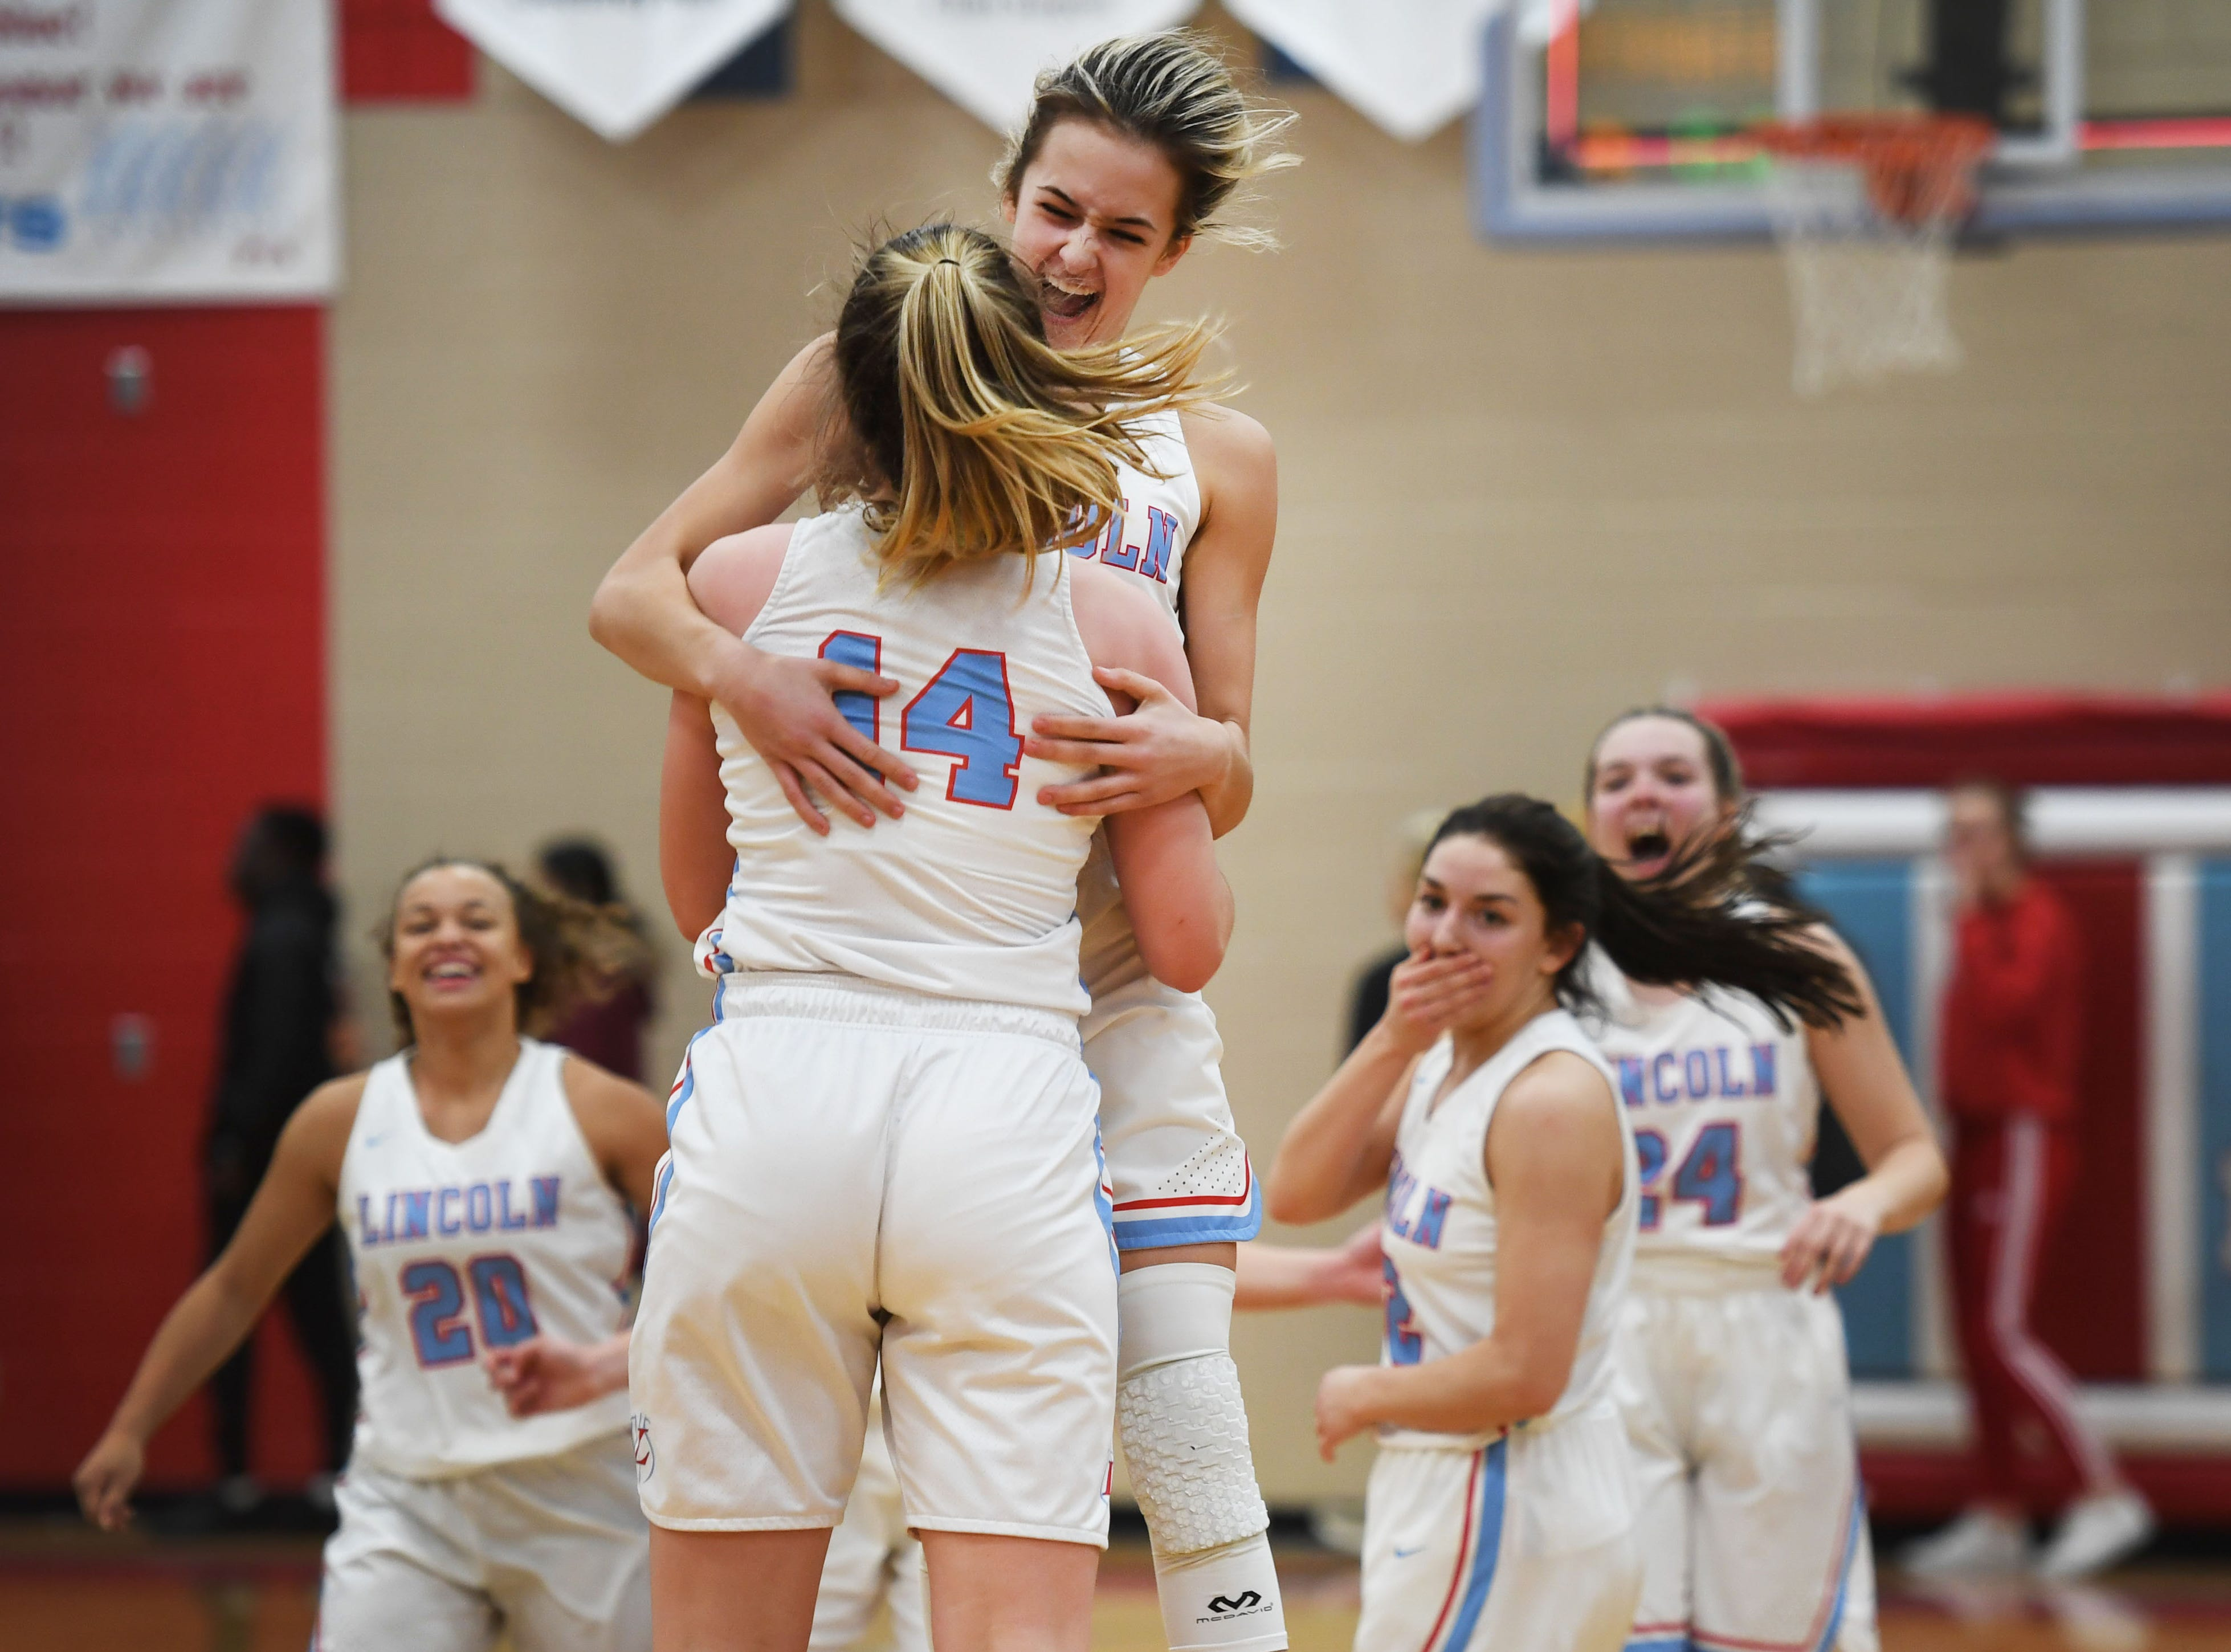 Lincoln celebrates around Emma Osmundson after she scores three points in the last seconds of the game against Washington Thursday, Jan. 24, at Lincoln. Lincoln won 63-62 against Washington.